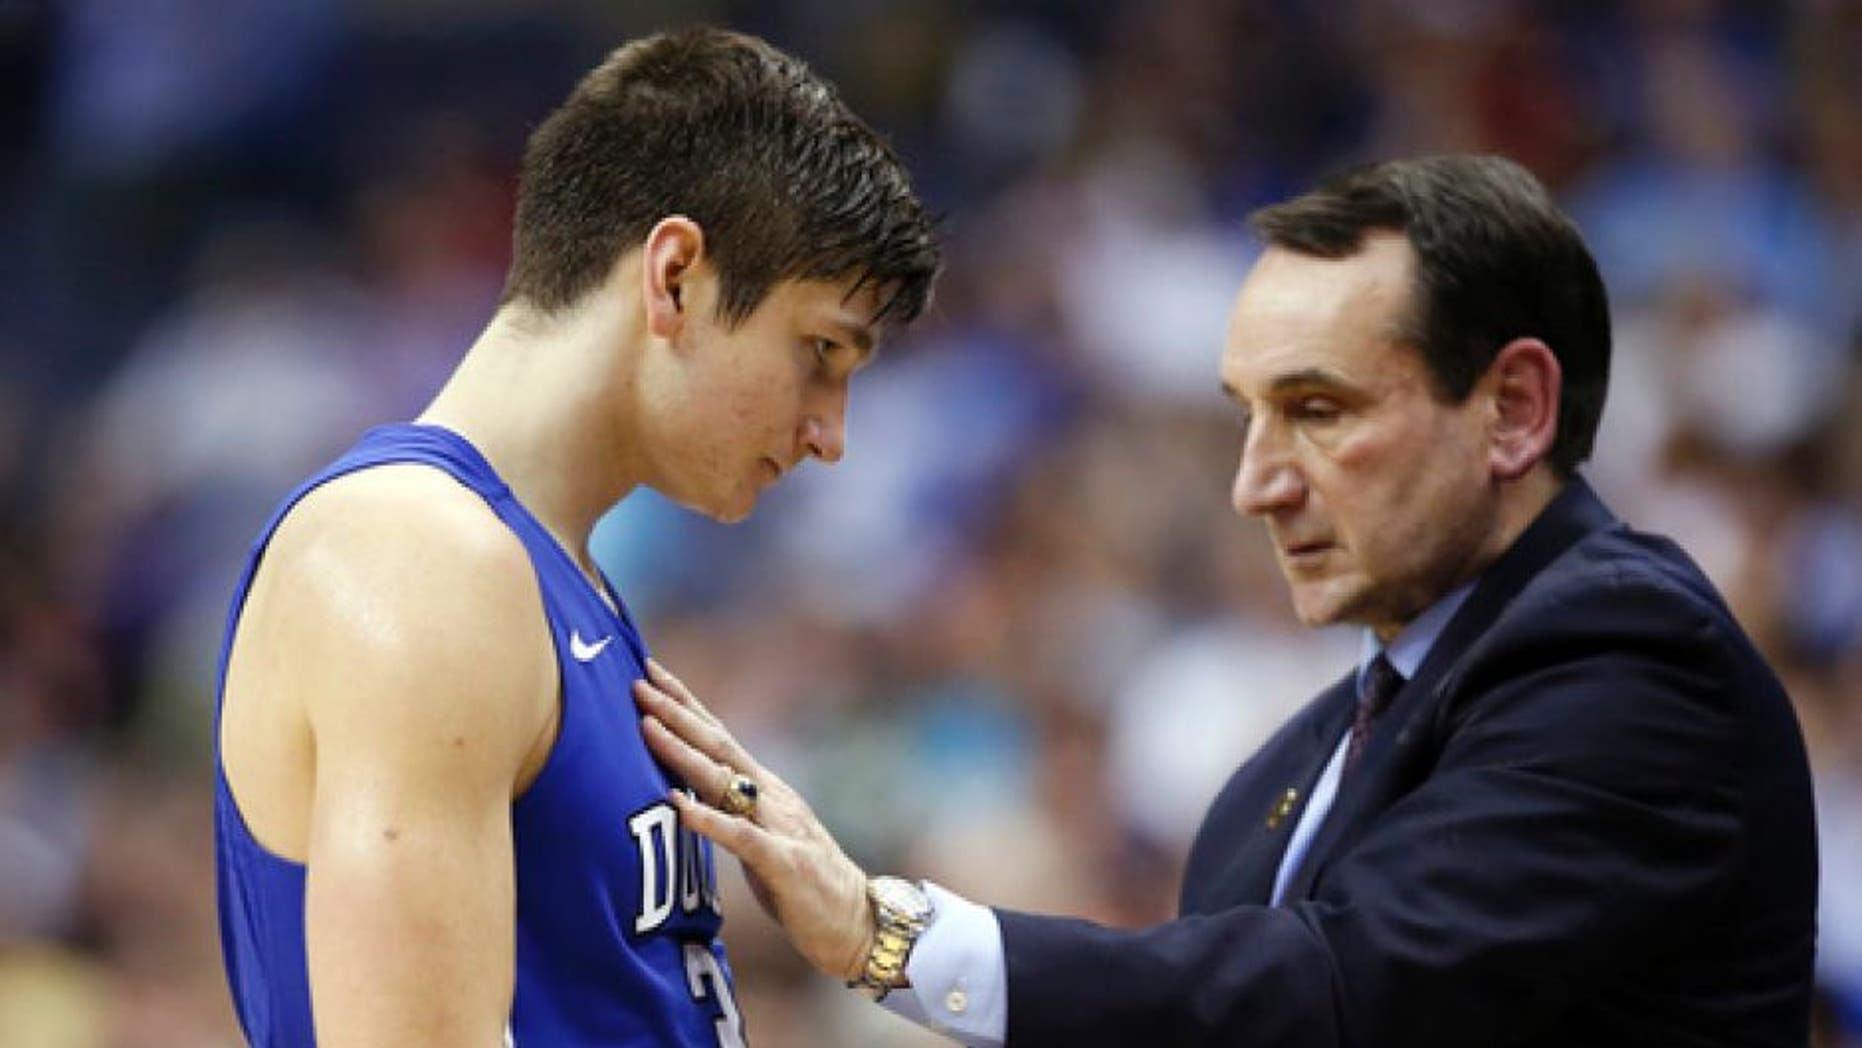 """FILE - In this March 10, 2016, file photo, Duke guard Grayson Allen (3) talks with coach Mike Krzyzewski during the team's NCAA college basketball game against Notre Dame in the Atlantic Coast Conference tournament in Washington. Krzyzewski handed down an """"indefinite"""" suspension to Allen because Allen couldn't stop tripping opponents. The suspension turned out to last one game. (AP Photo/Alex Brandon, File)"""